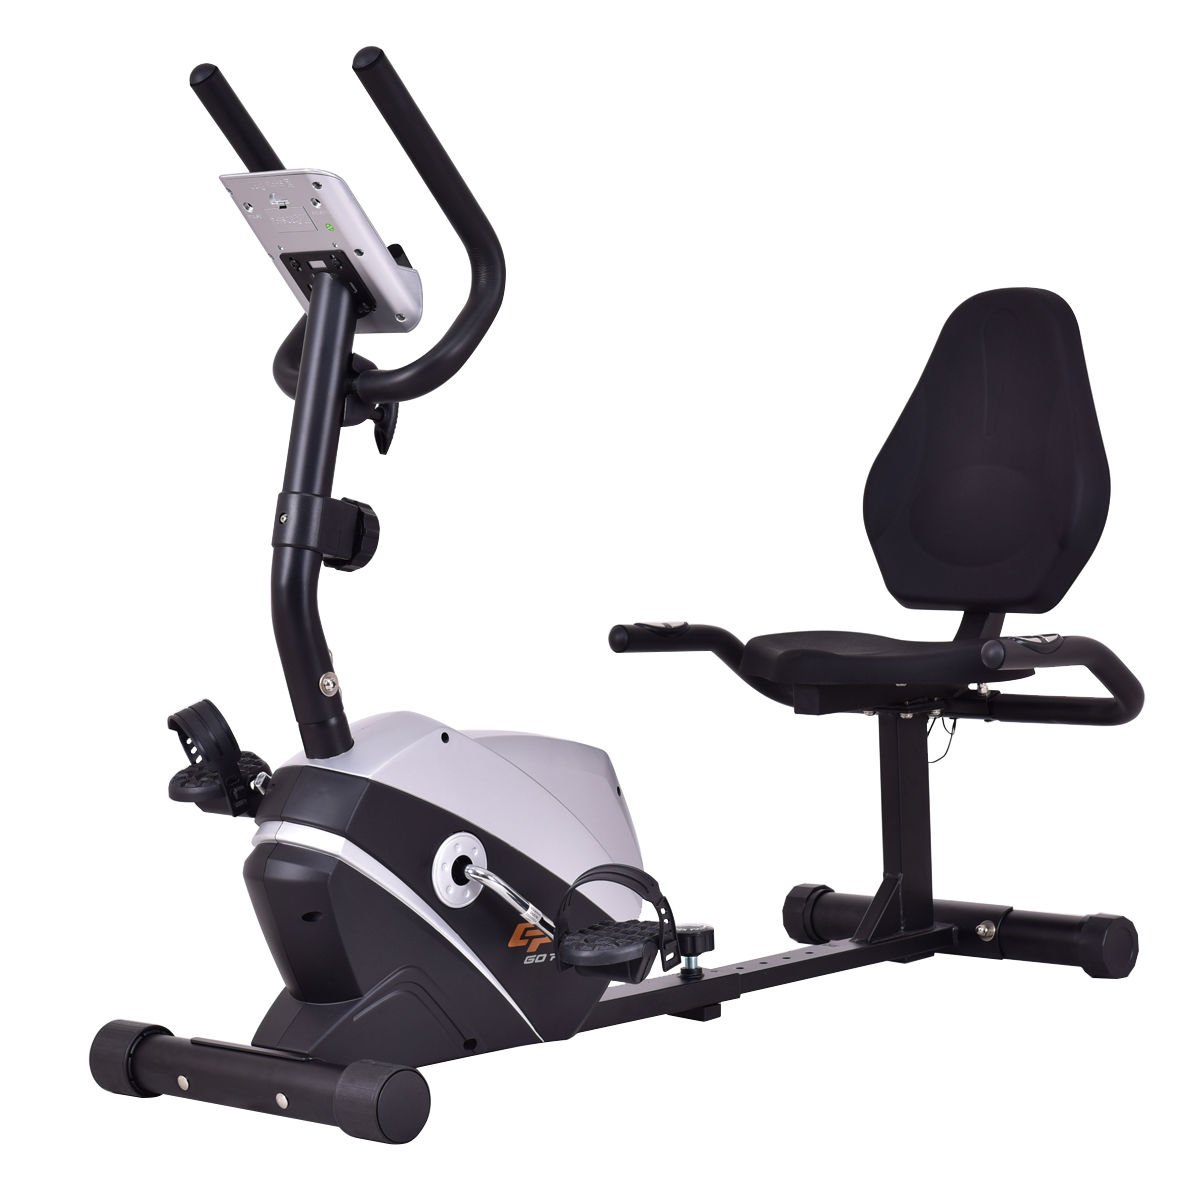 Goplus Magnet Recumbent Bike Exercise Bike Stationary Bicycle Cardio Workout Fitness Bicycle Equipment